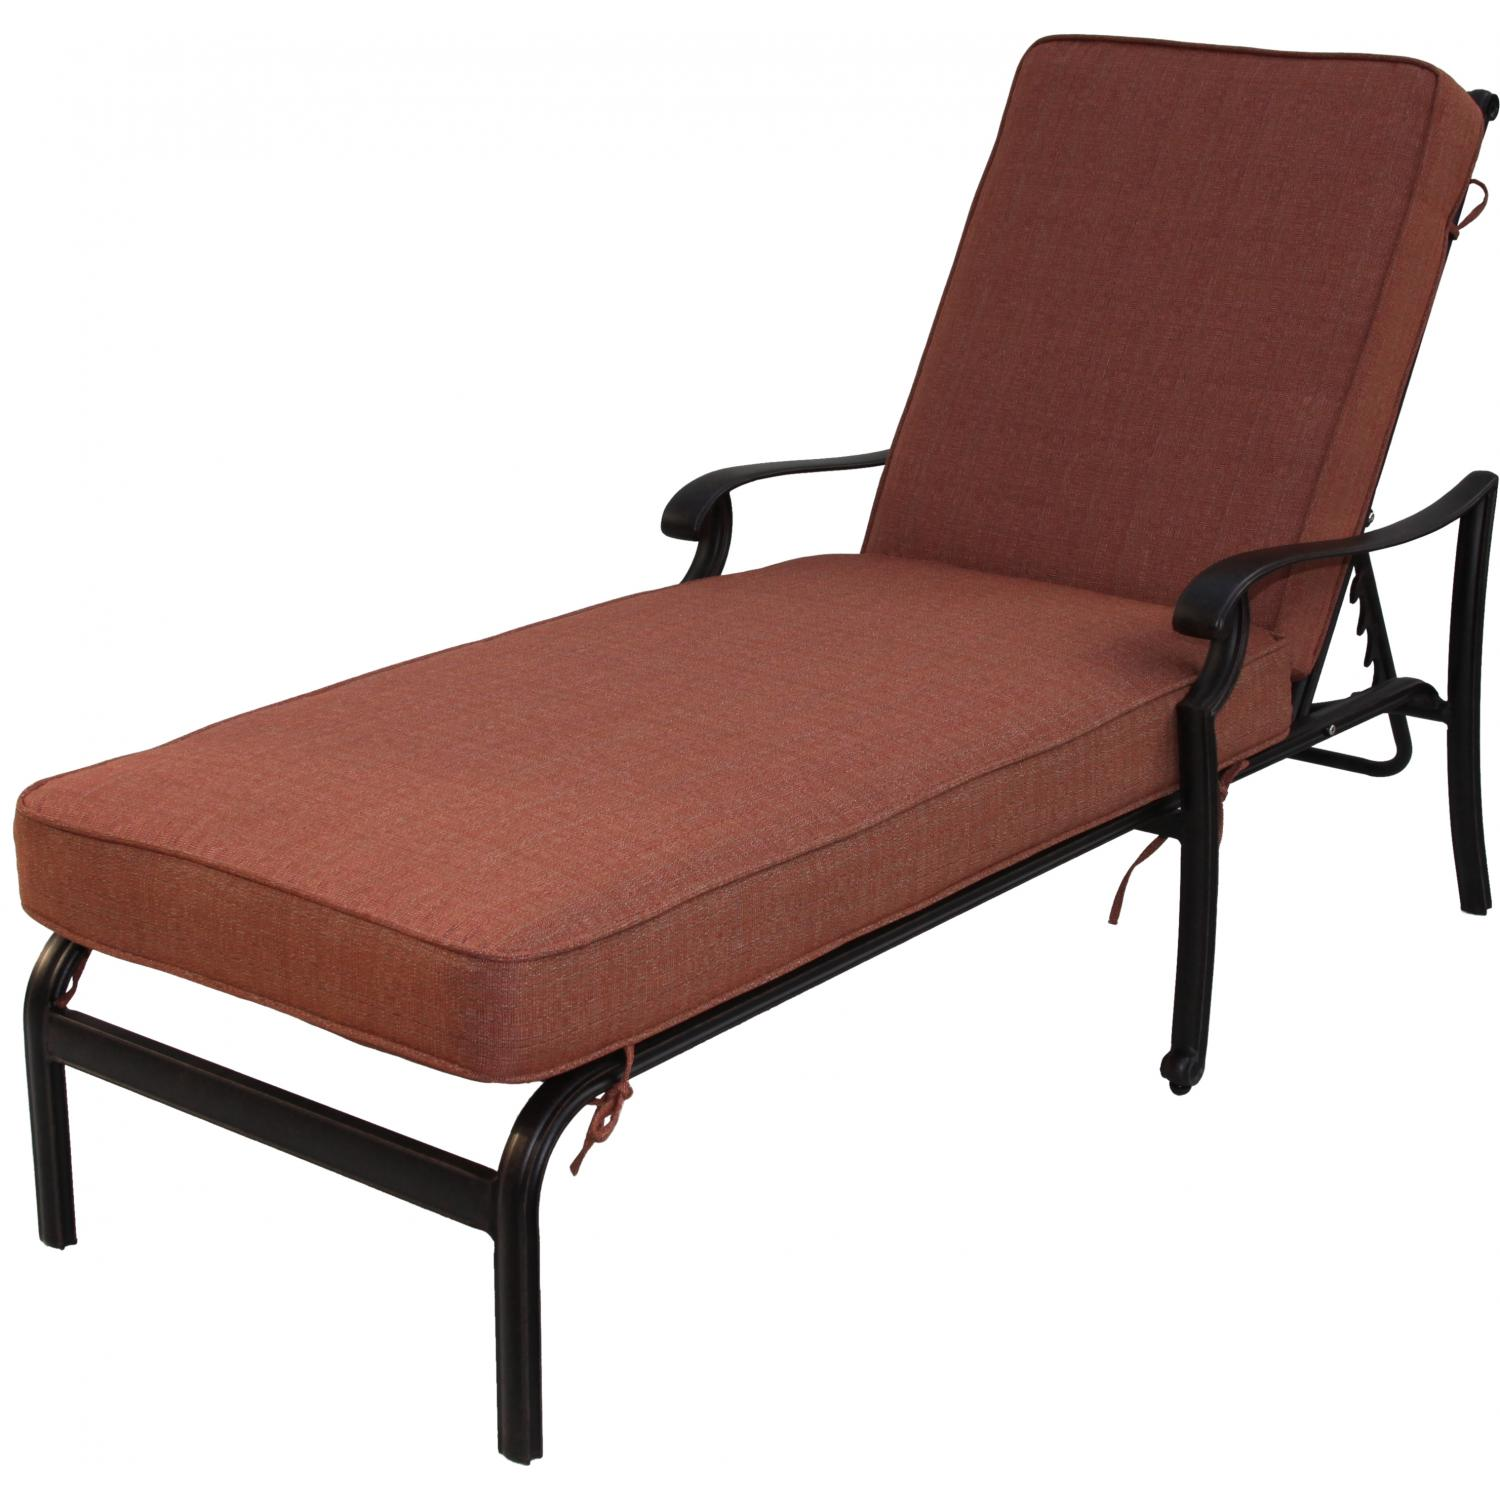 Darlee st cruz cast aluminum patio chaise lounge antique for Aluminum outdoor chaise lounge